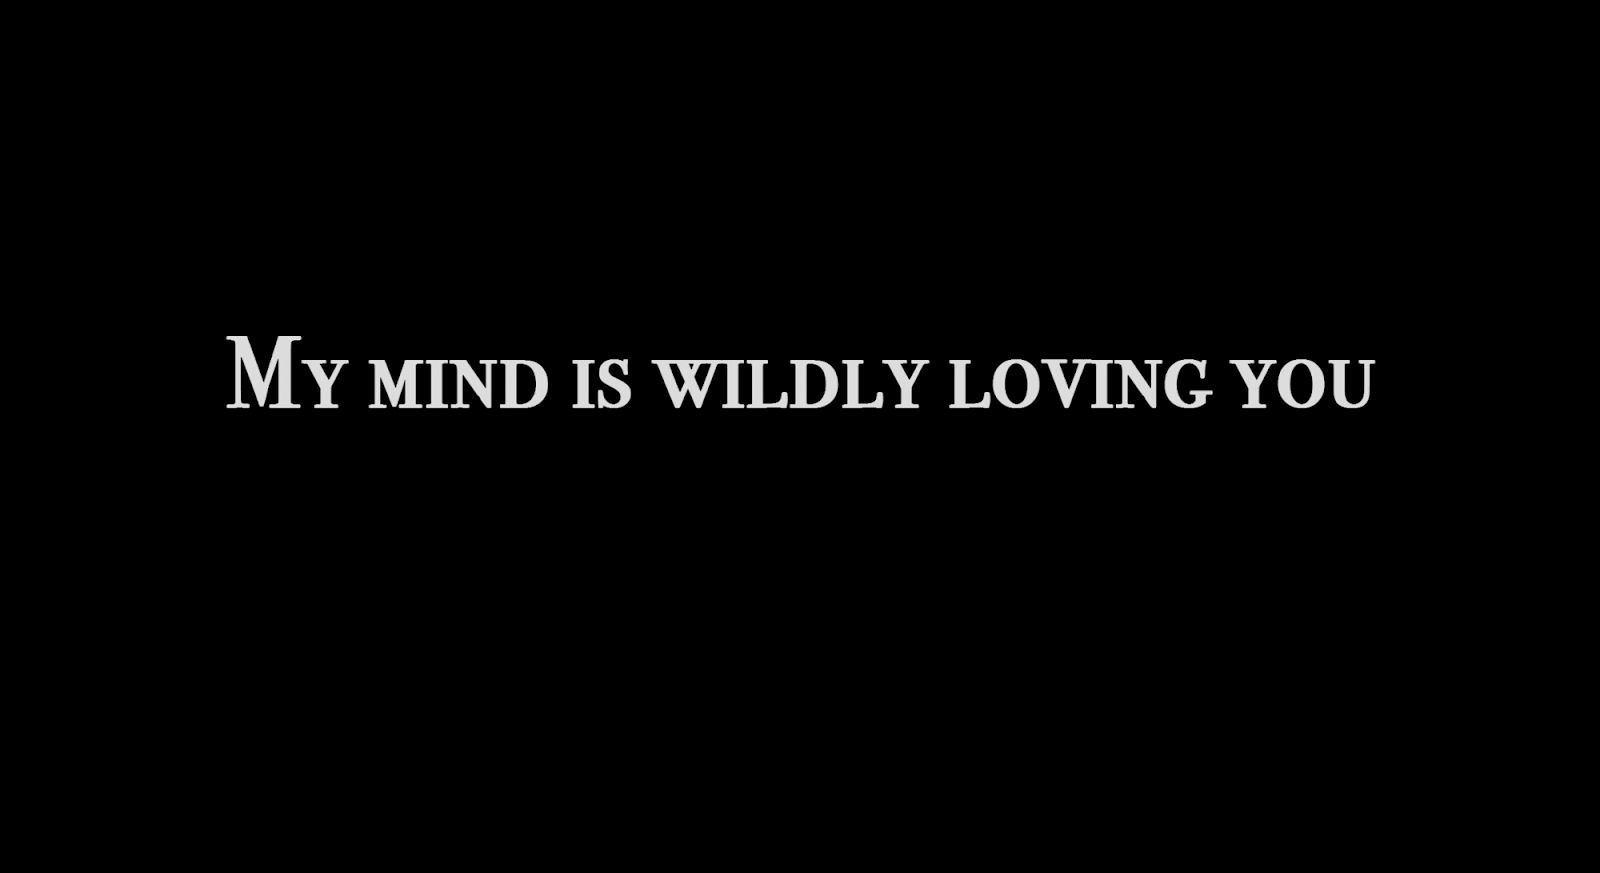 My mind is wildly loving you